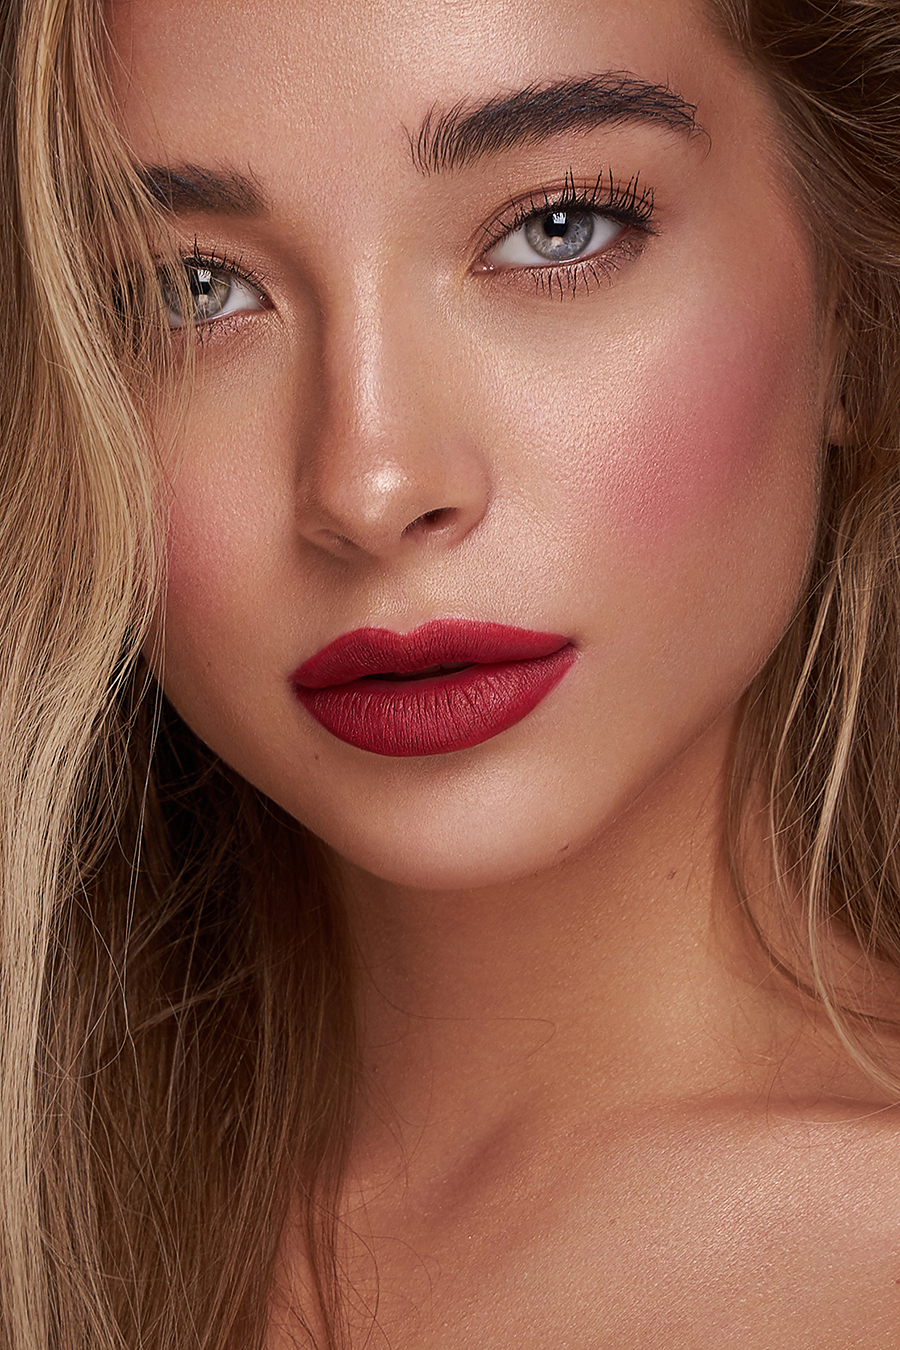 Beauty Retouch / Post processing by Claire Rees Retouching / Uploaded 17th January 2021 @ 03:27 PM